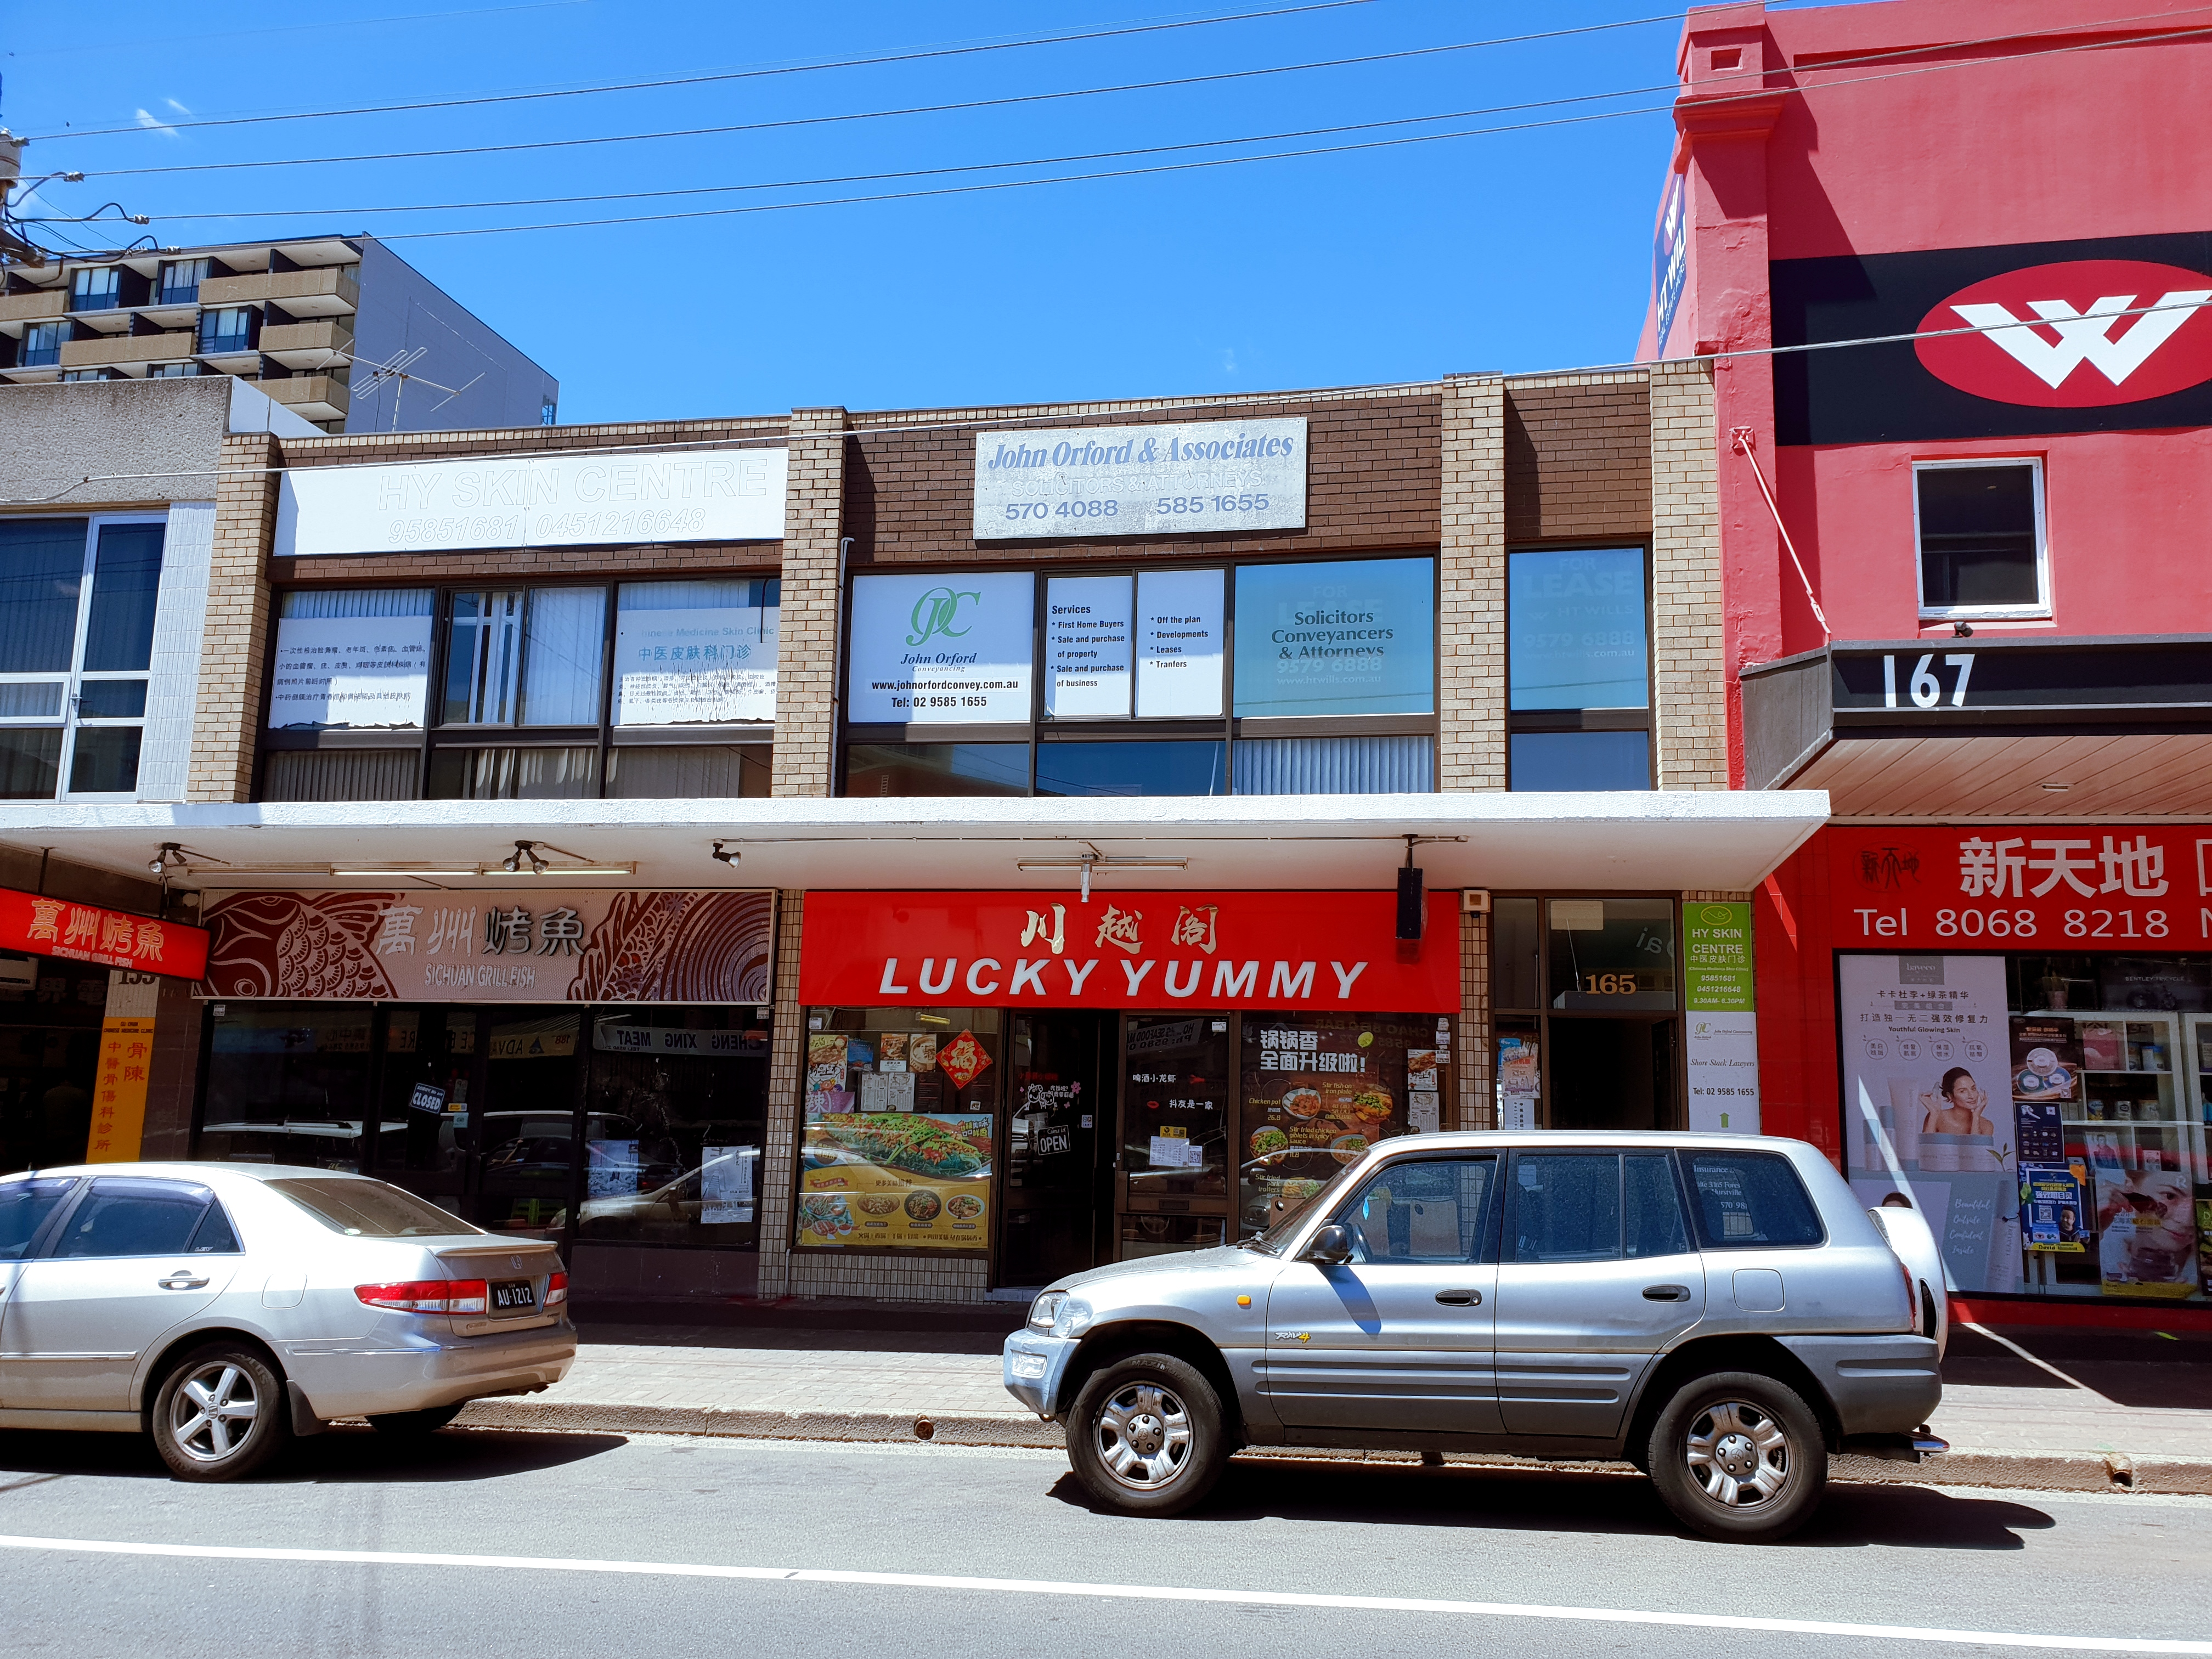 Image: OFFICE SPACE IN THE HEART OF HURSTVILLE